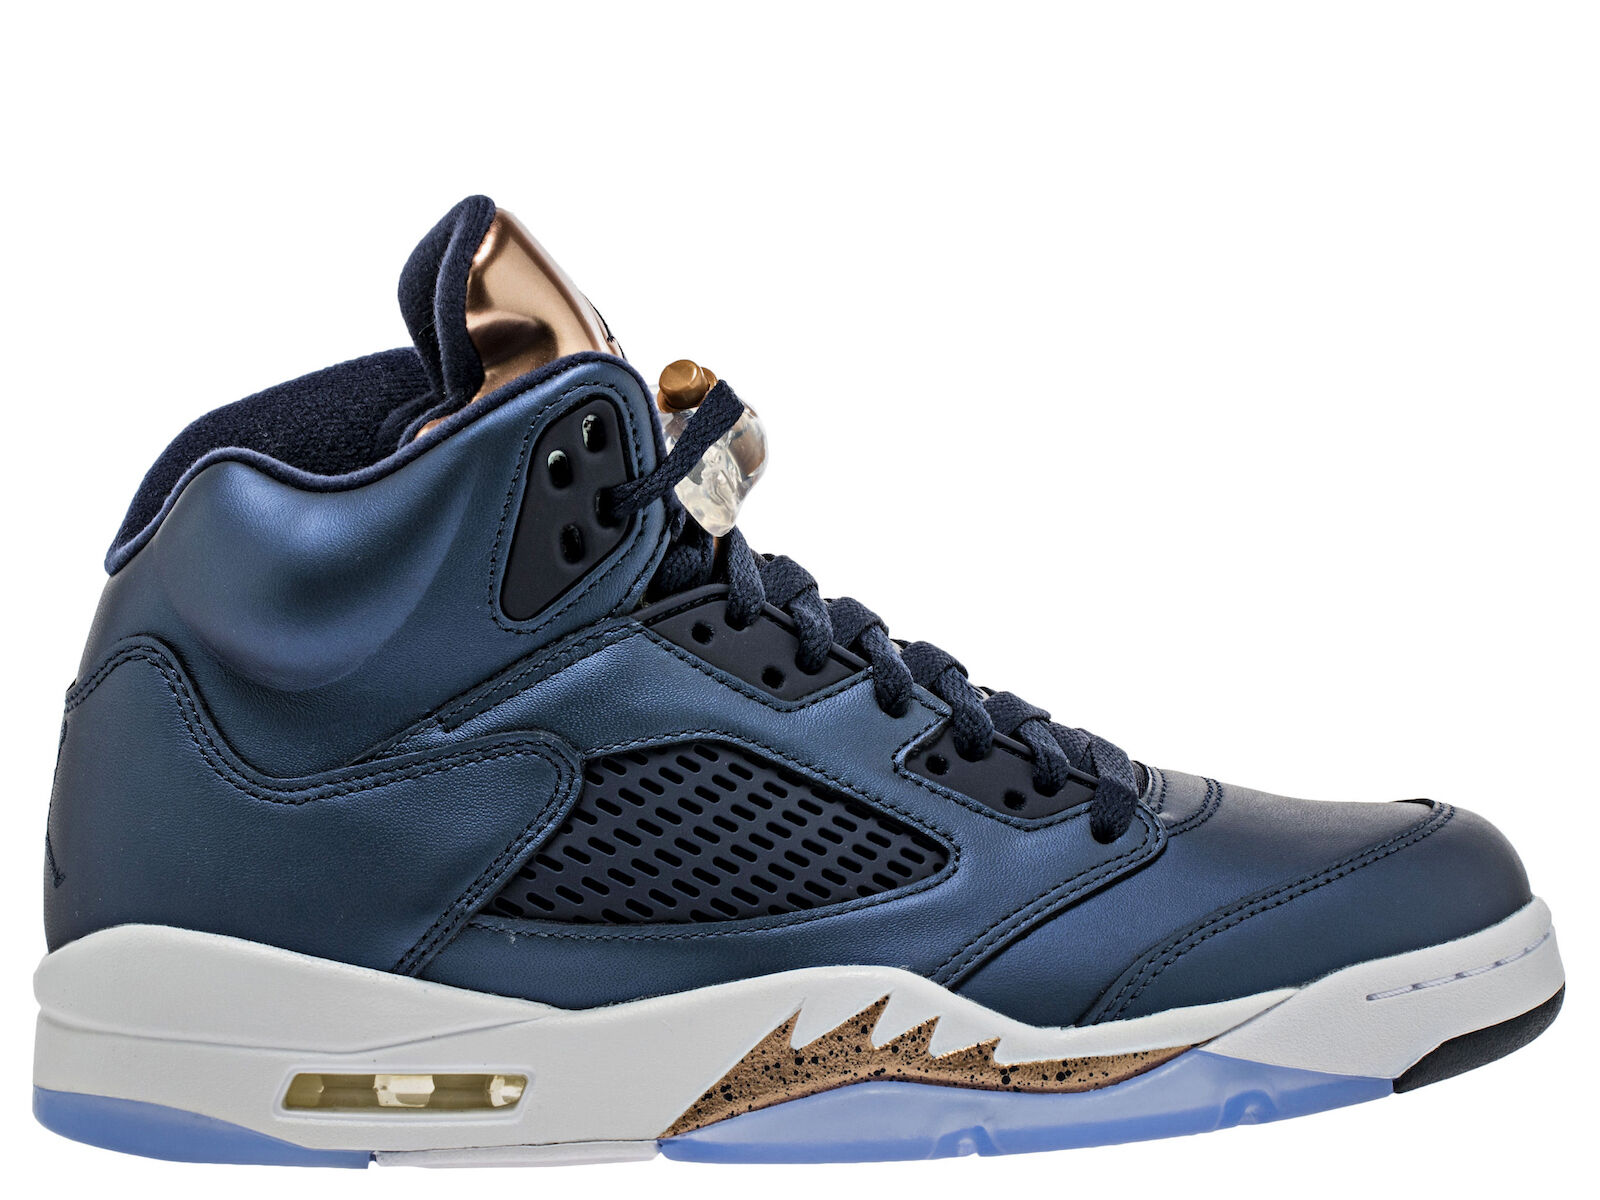 Men Brand New Air Jordan 5 Retro  Bronze  Athletic Fashion Sneakers